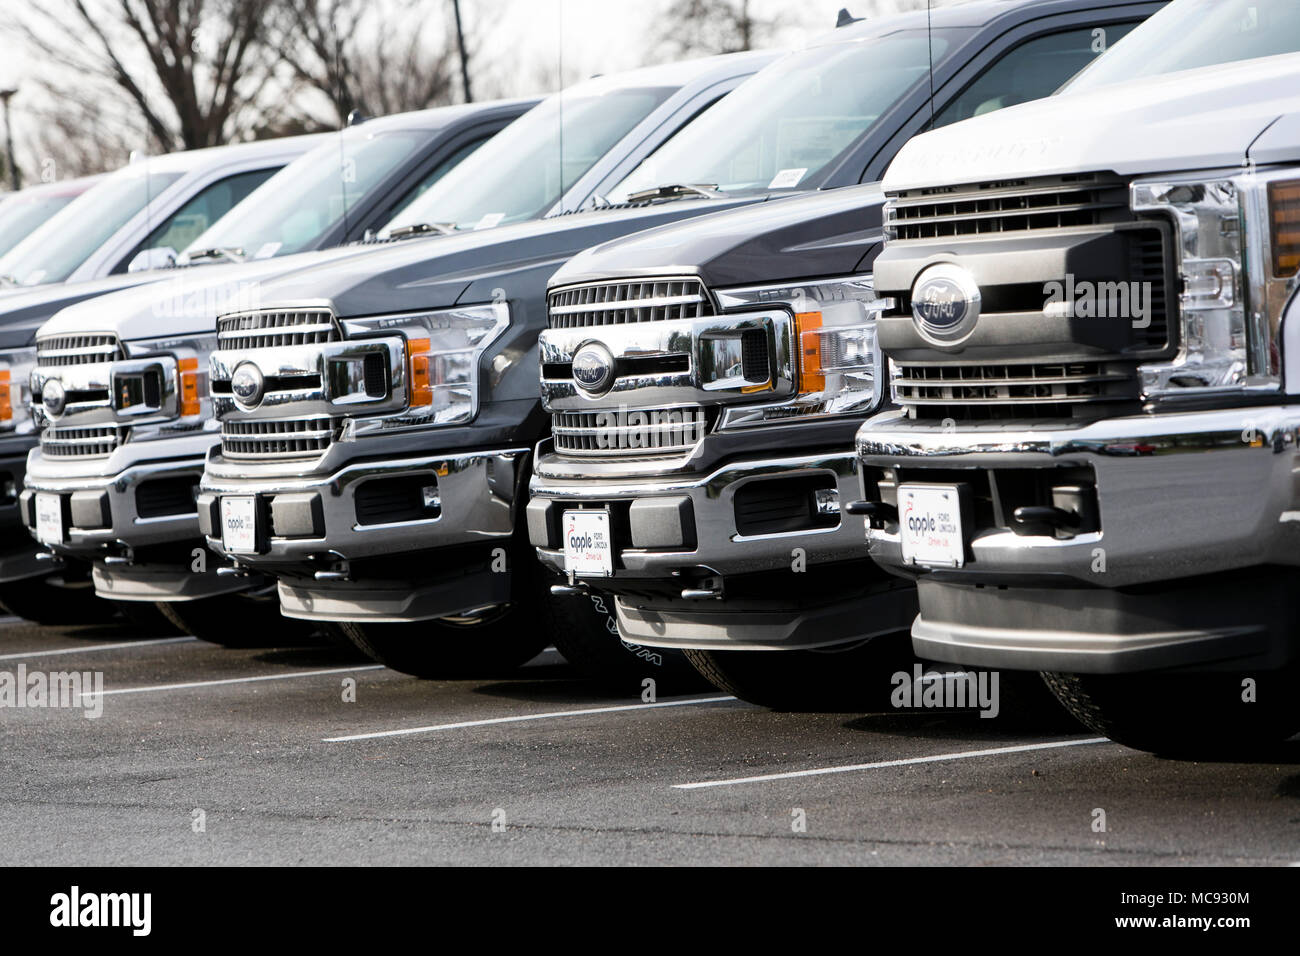 ford trucks stock photos ford trucks stock images alamy. Black Bedroom Furniture Sets. Home Design Ideas